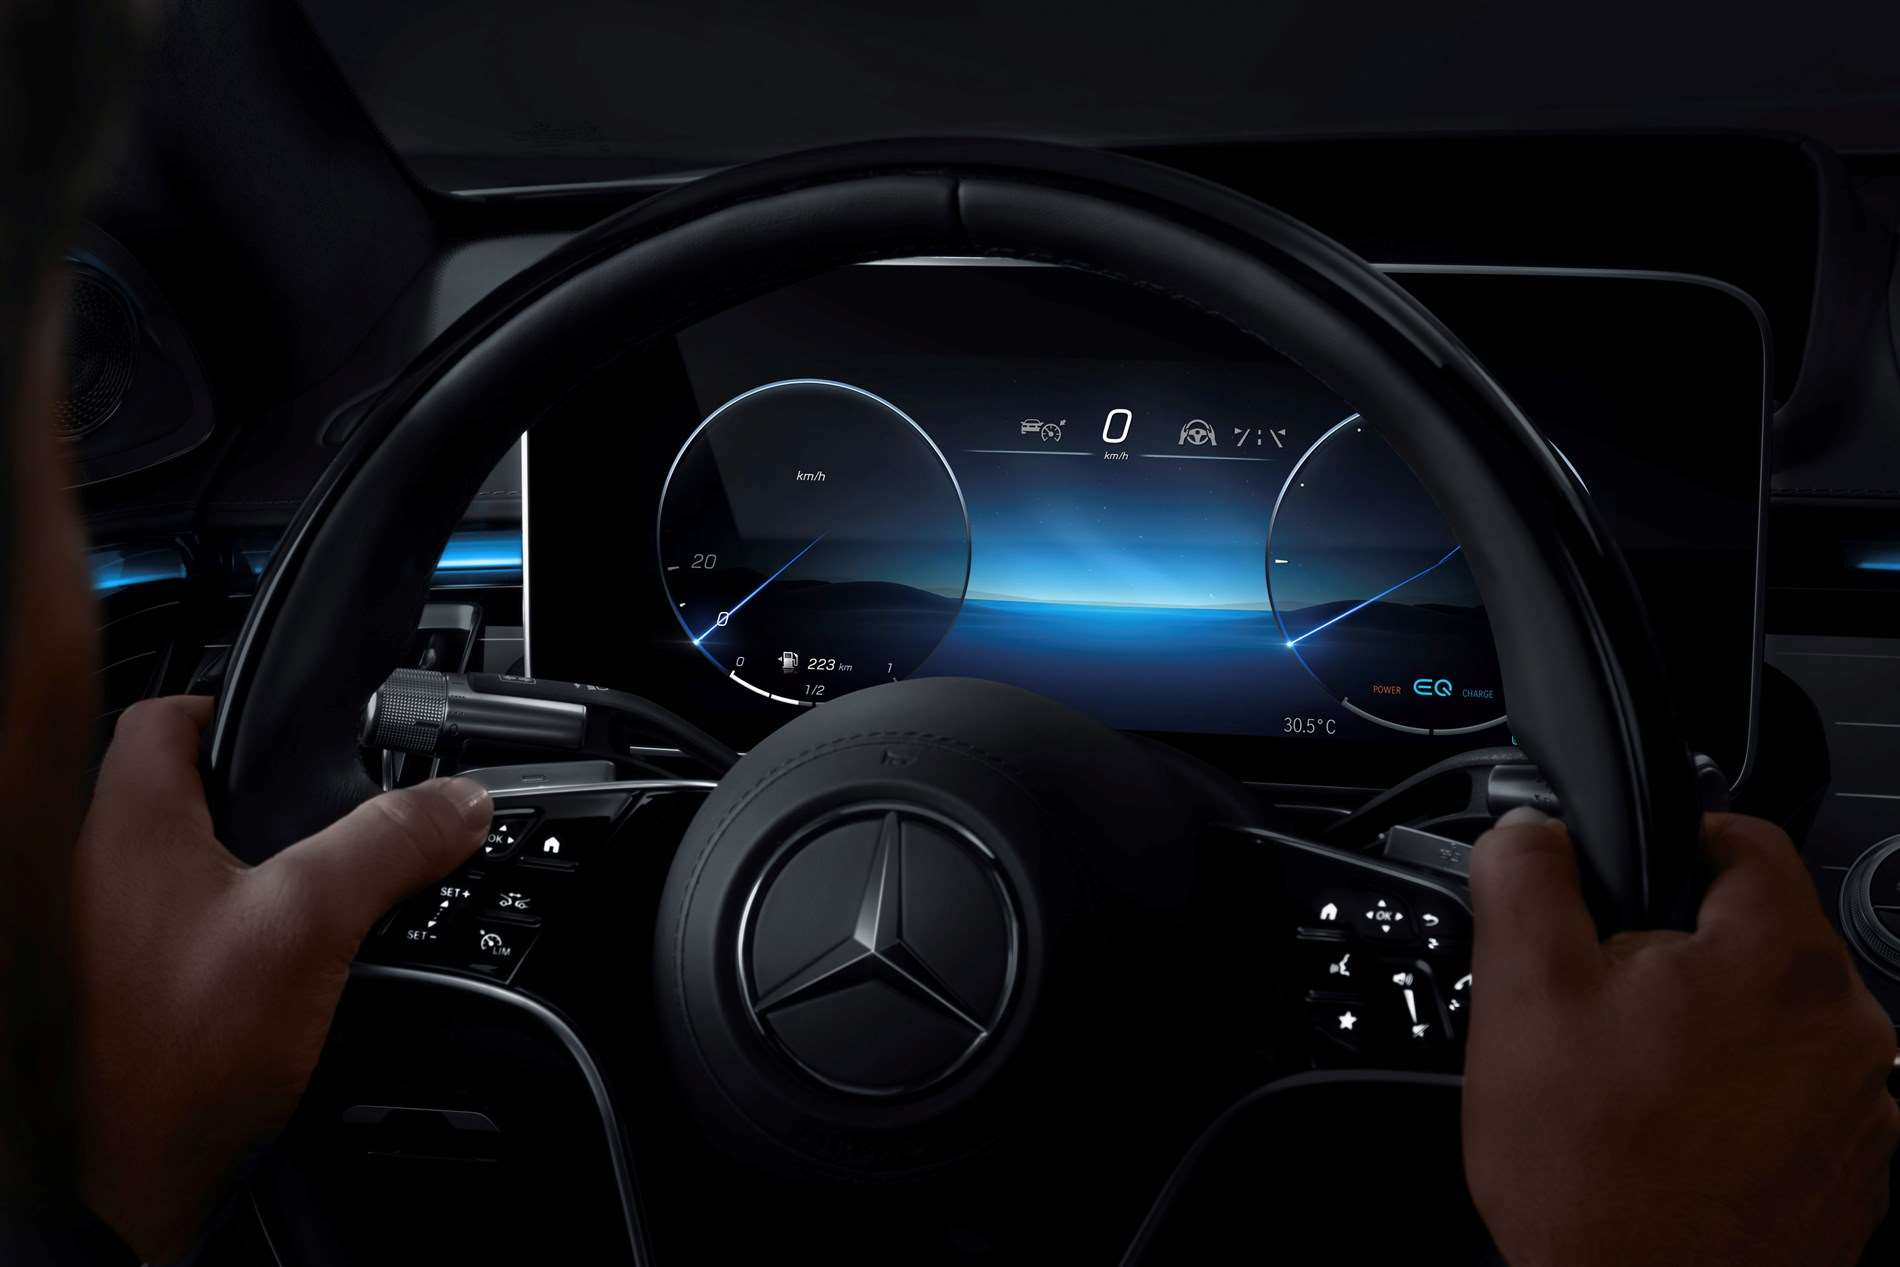 Meet the S-Class DIGITAL : « My MBUX » (Mercedes-Benz User Experience)